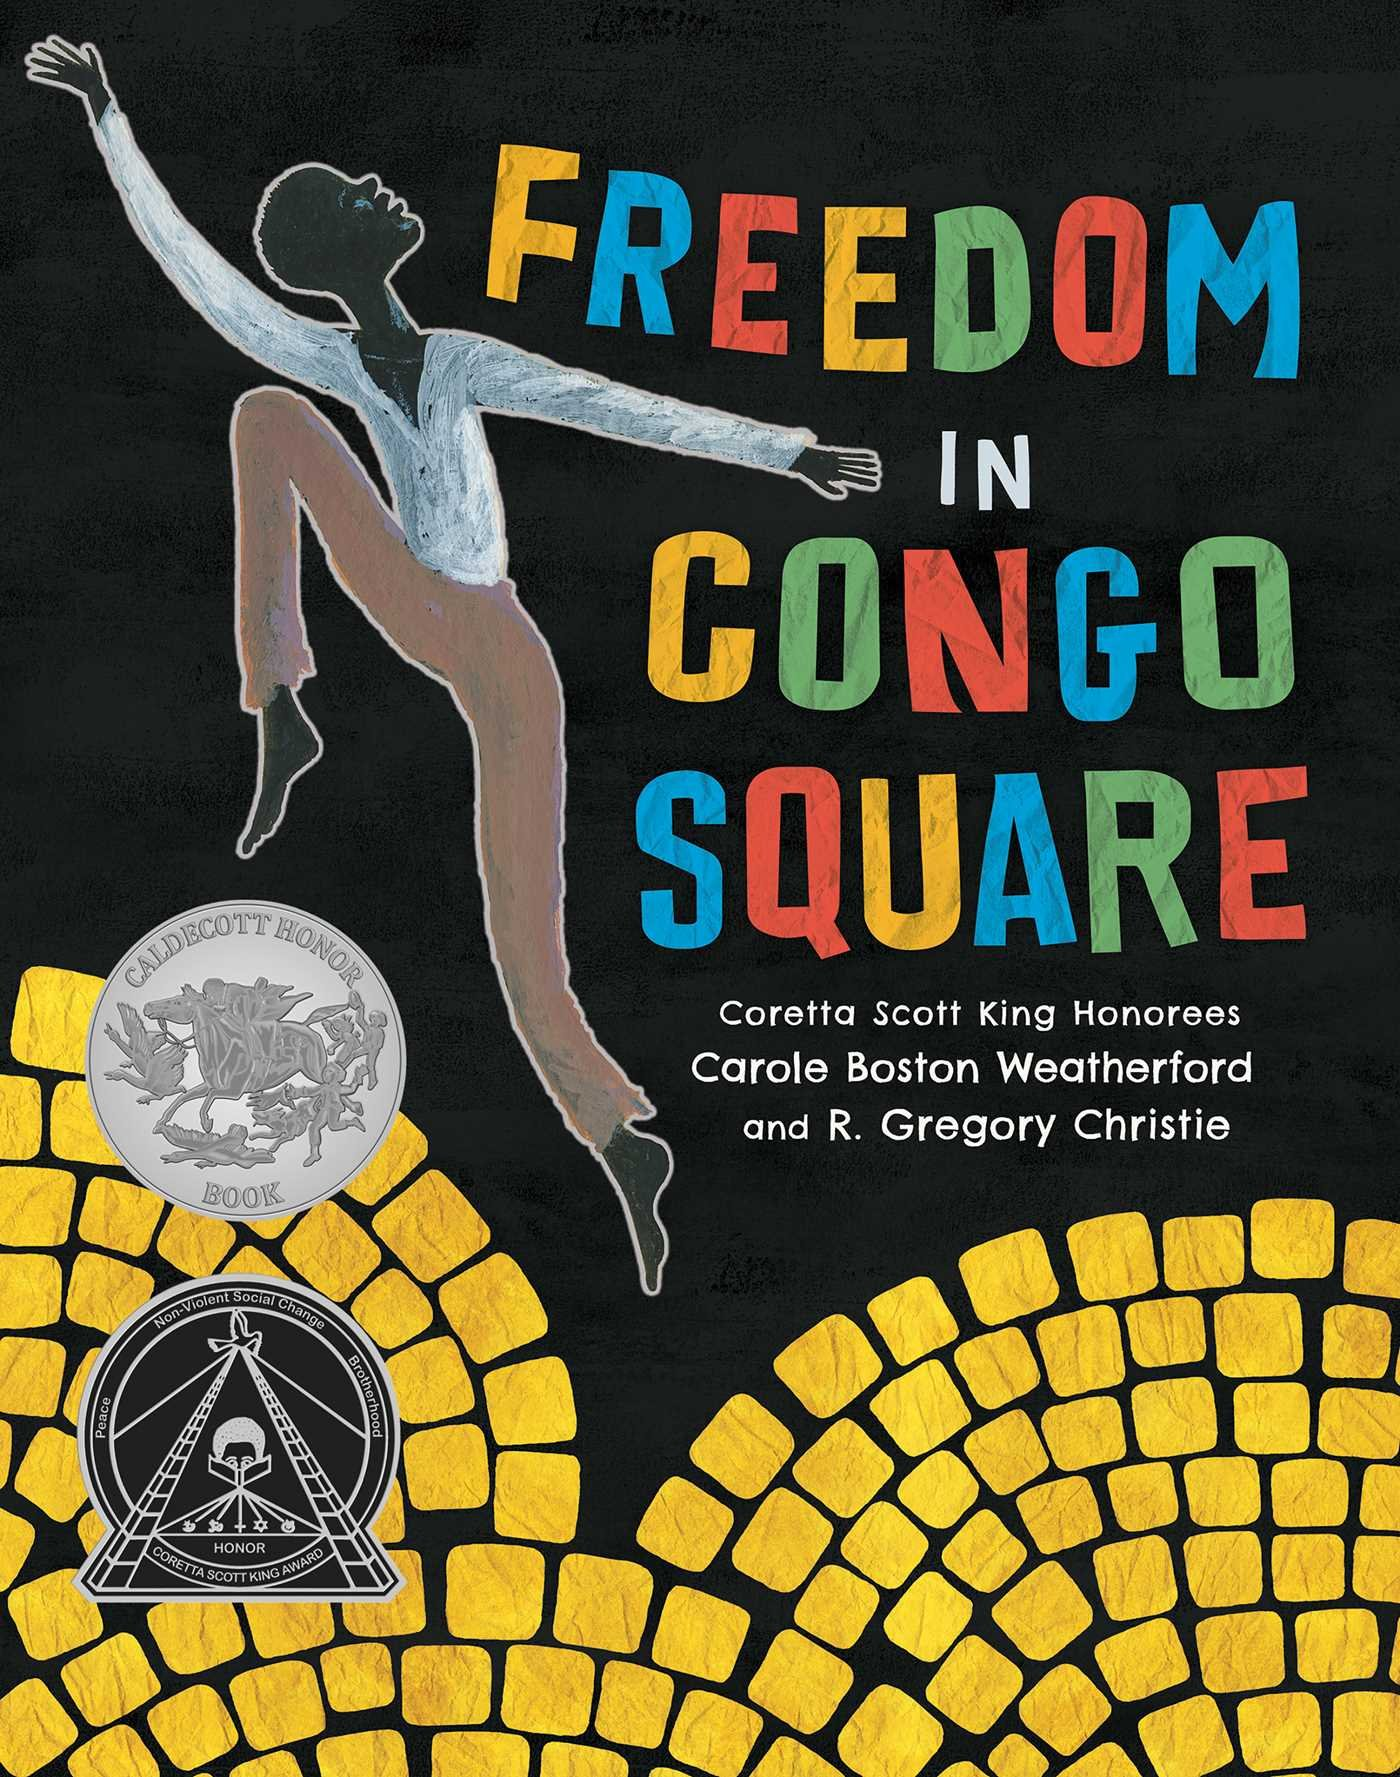 Freedom in Congo Square Image